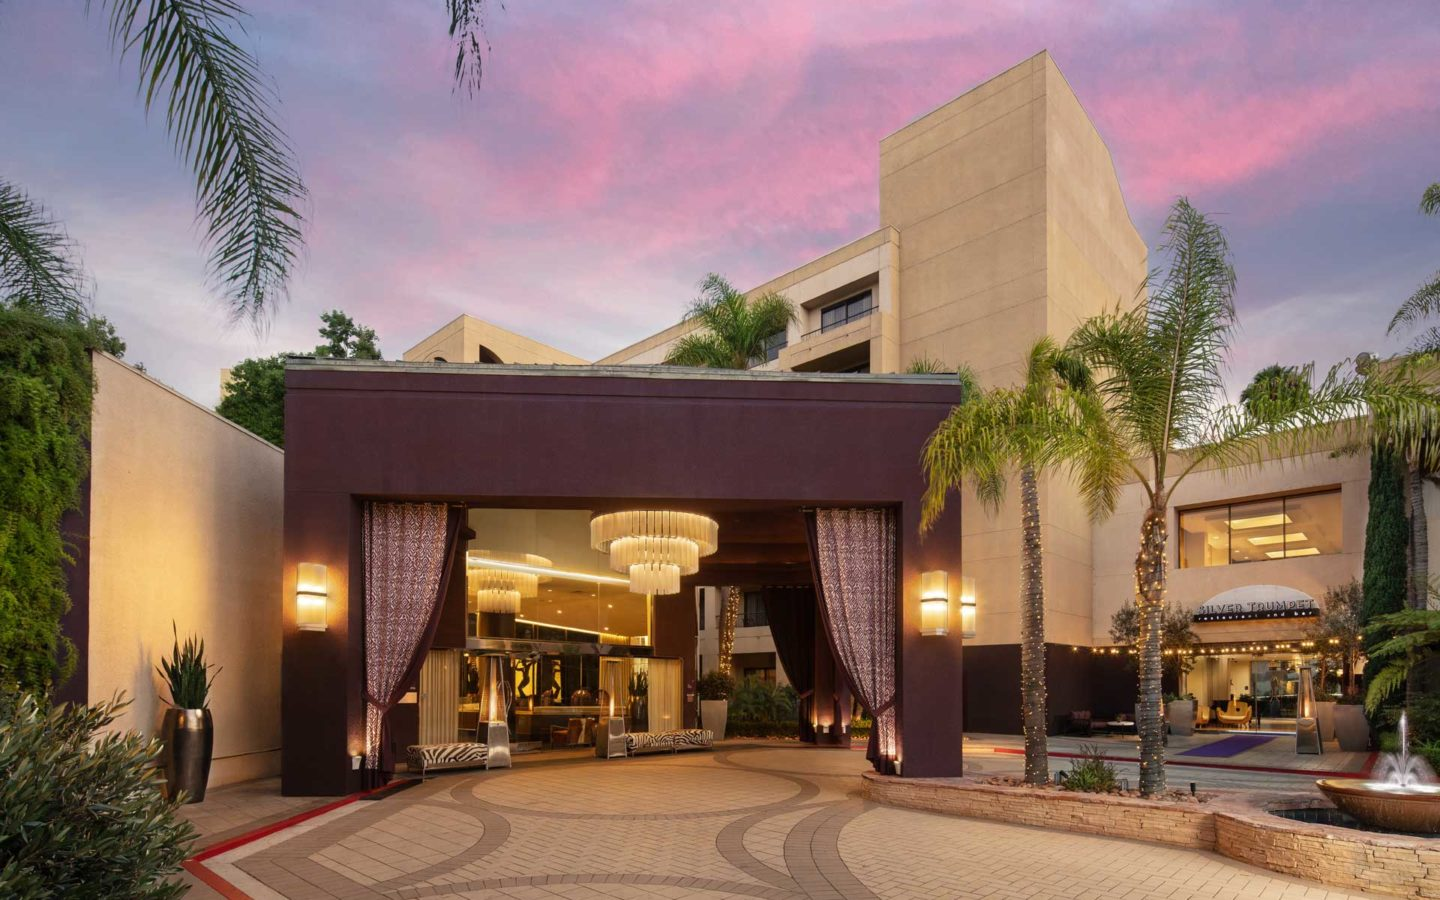 exterior front entrance of beige luxury hotel at sunset surrounded by palm trees